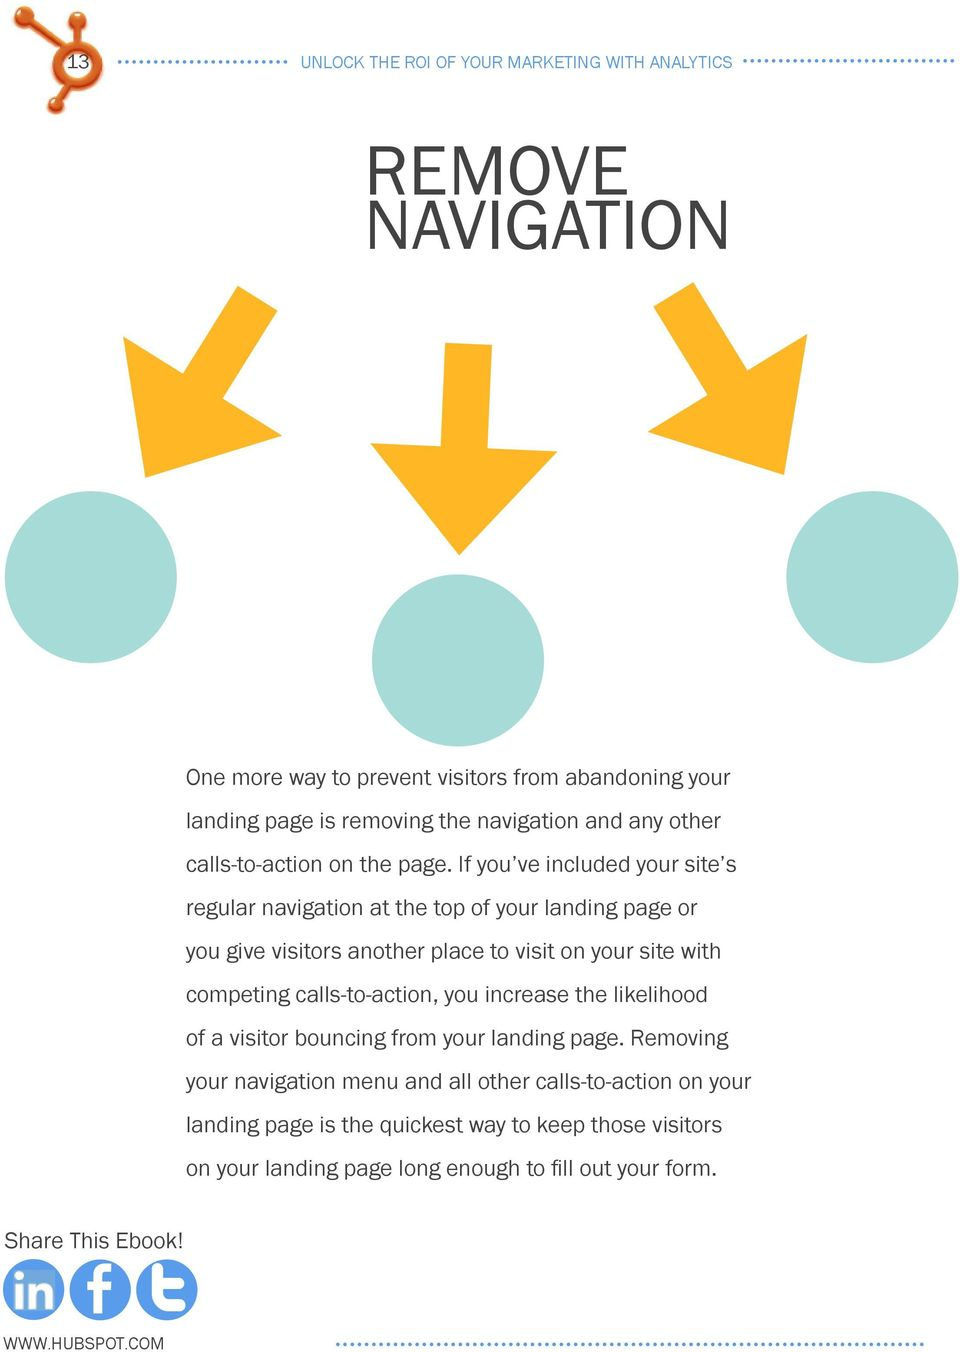 If you ve included your site s regular navigation at the top of your landing page or you give visitors another place to visit on your site with